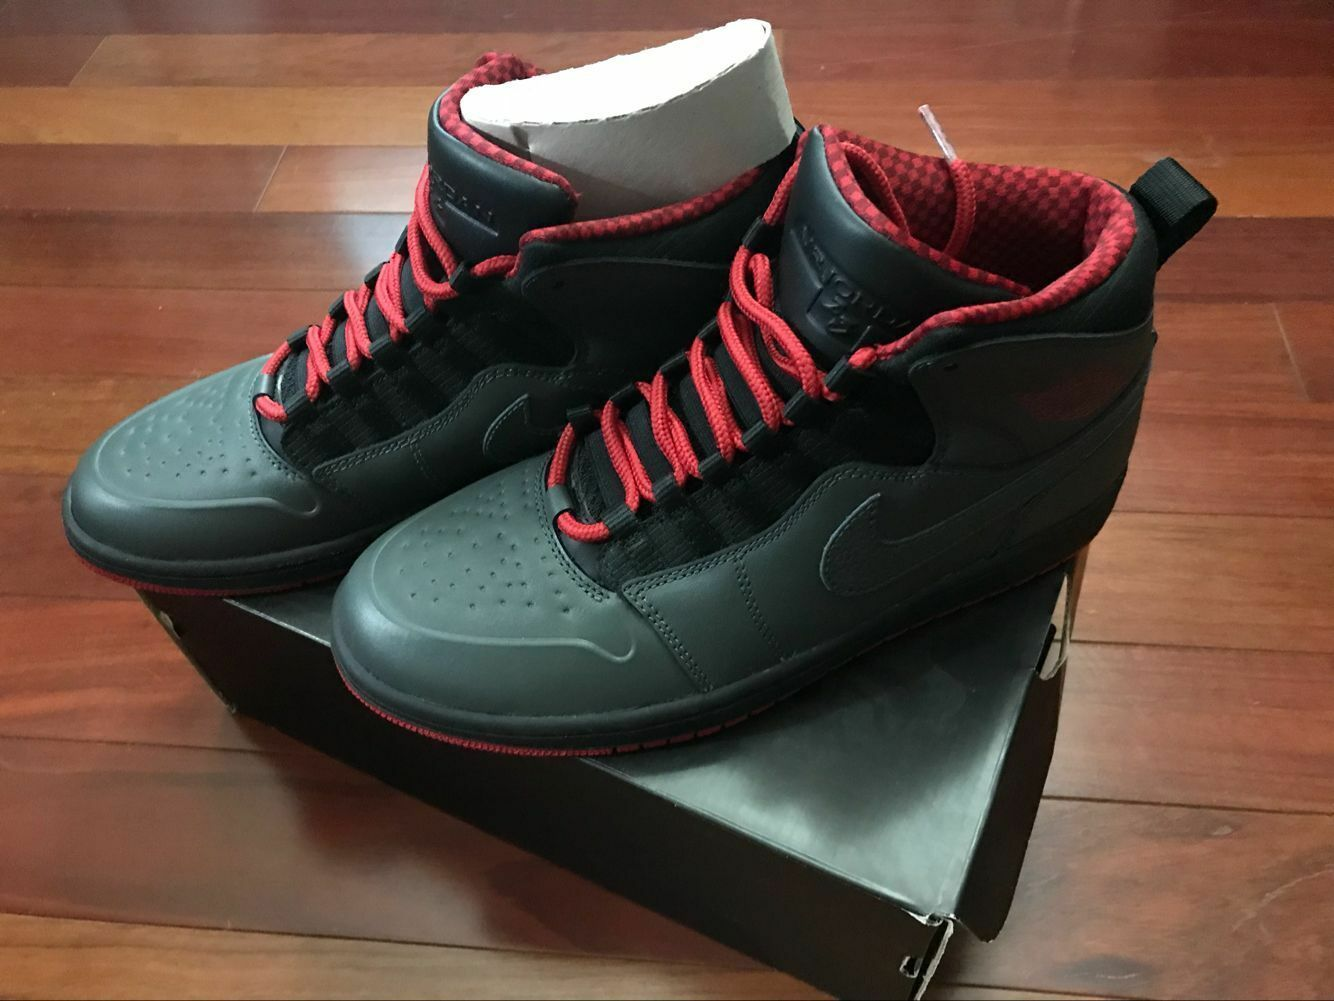 Nike Air Jordan 1 Retro '94 Anthracite Red Black  631733-004 size 8,8.5,9,9.5